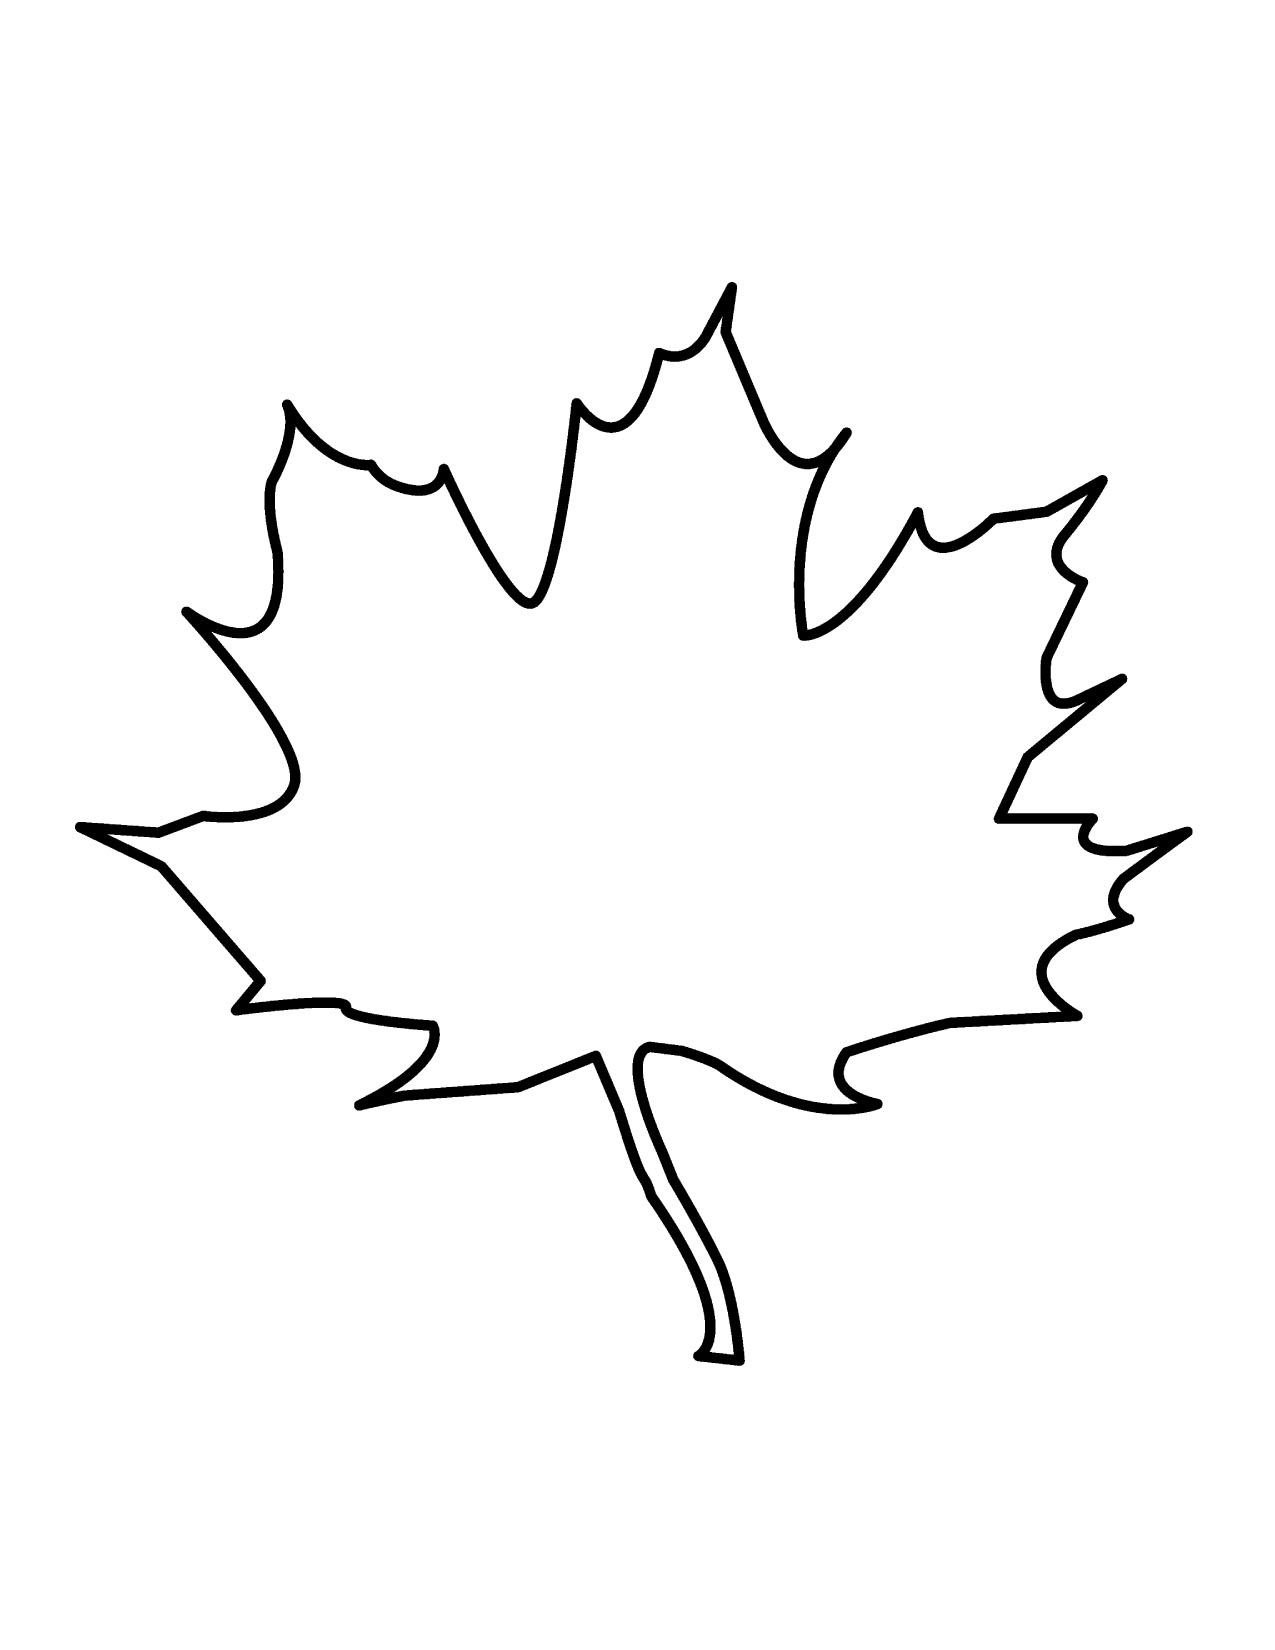 Clip Art Leaf Outline Clip Art maple leaf outline clipart kid 18 fall leaves free cliparts that you can download to you